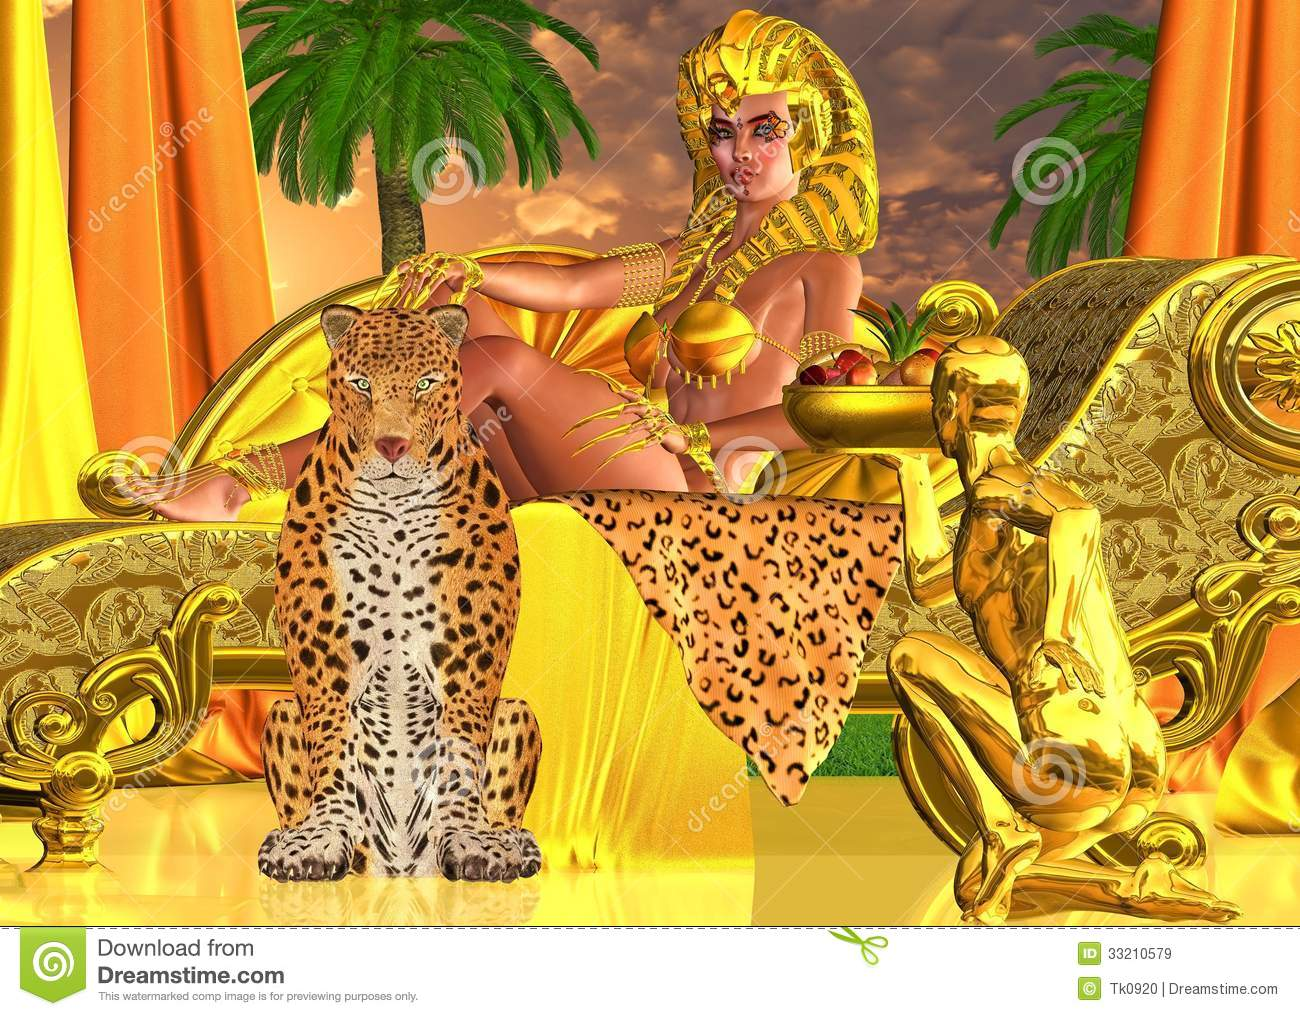 Serve The Pharaoh Queen Royalty Free Stock Image